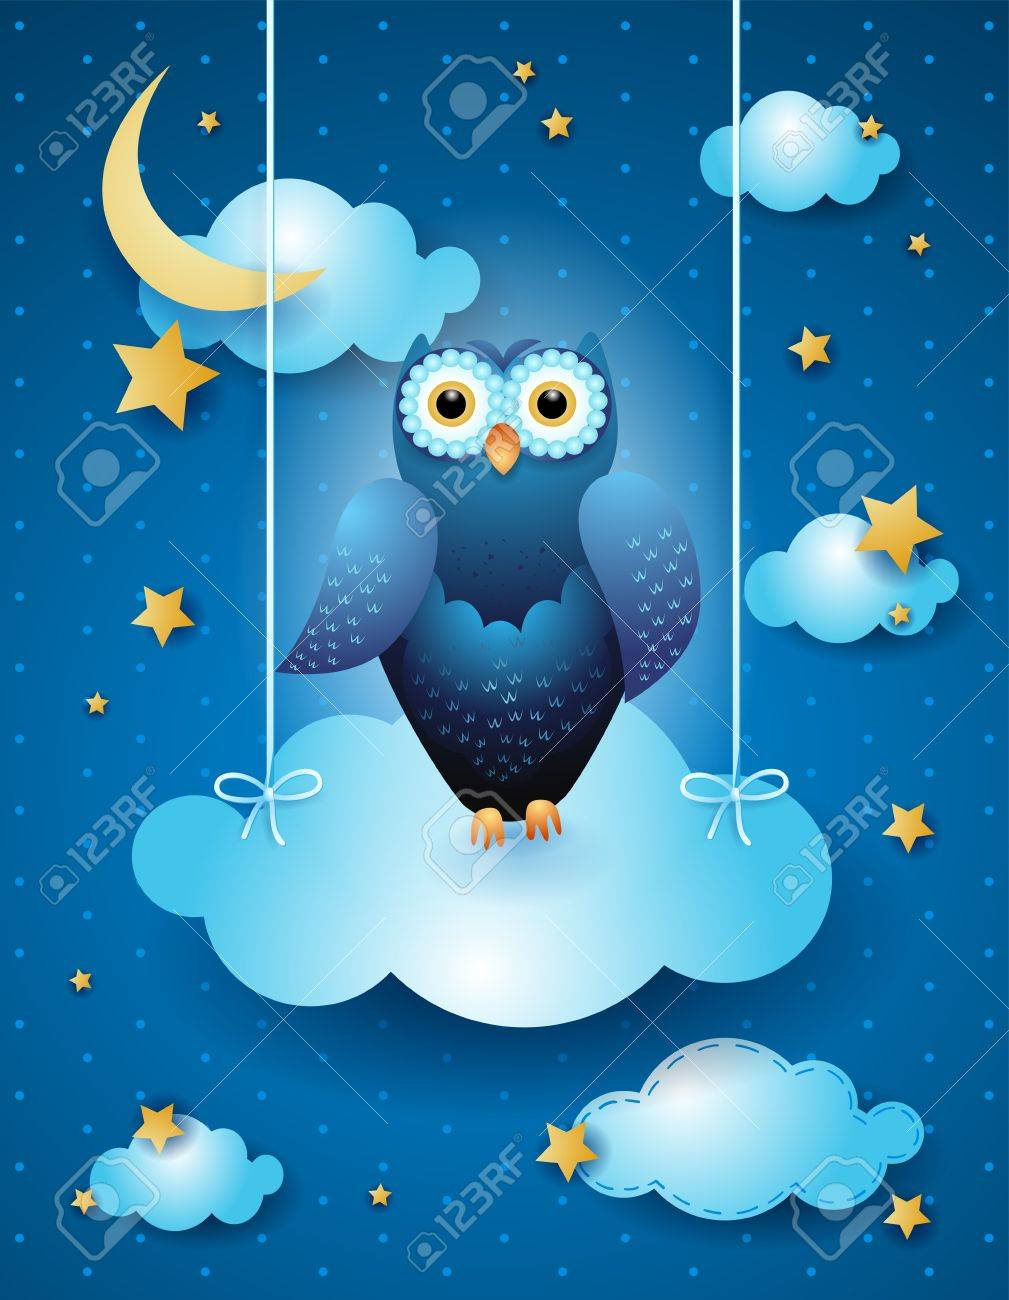 Owl and cloud by night, vector eps10 Stock Vector - 18970320